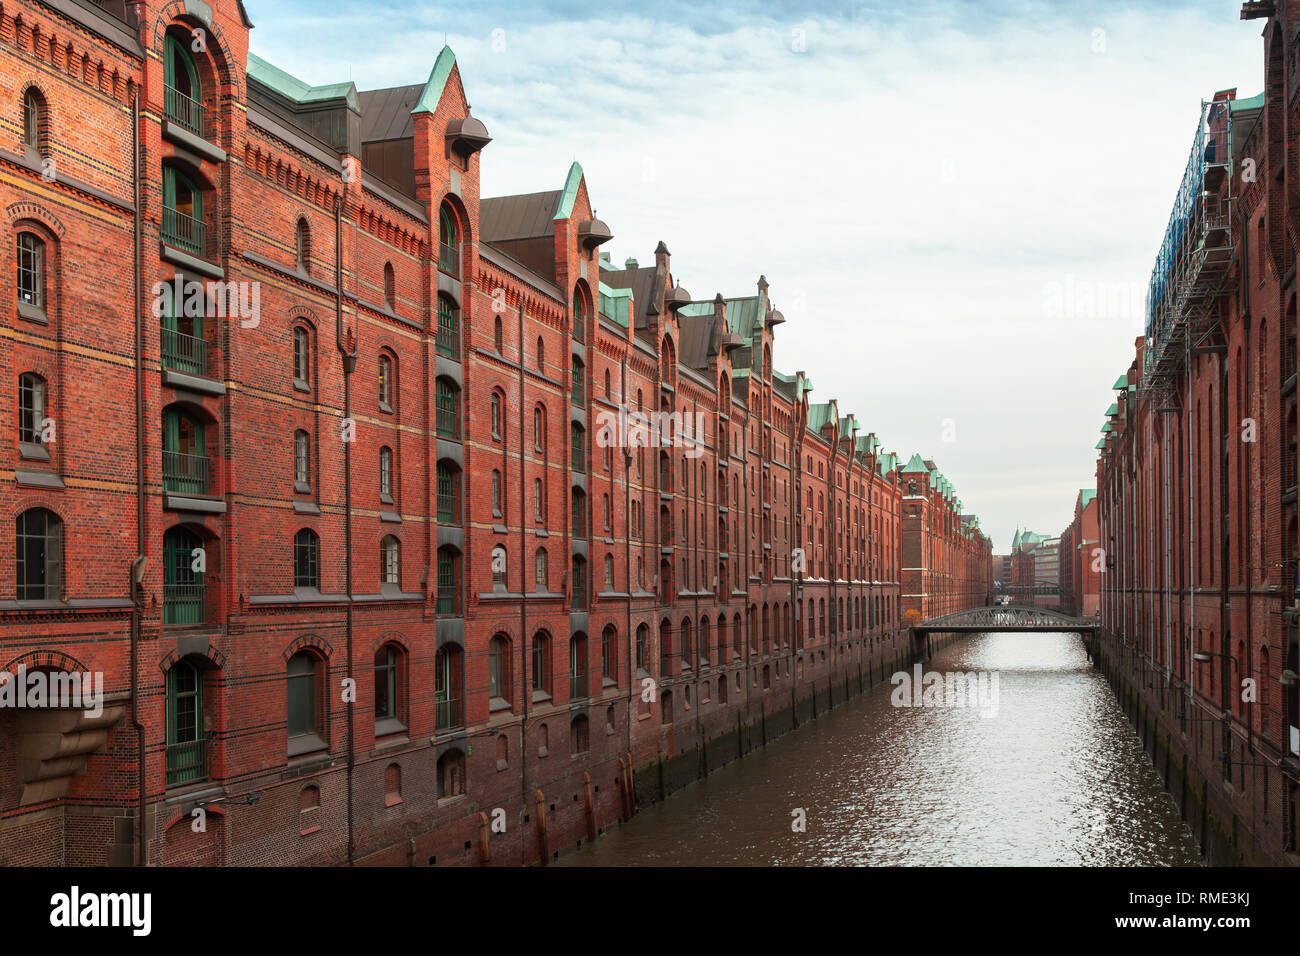 Speicherstadt, warehouse district in Hamburg, Germany, the largest warehouse district in the world where the buildings stand on timber-pile foundation Stock Photo